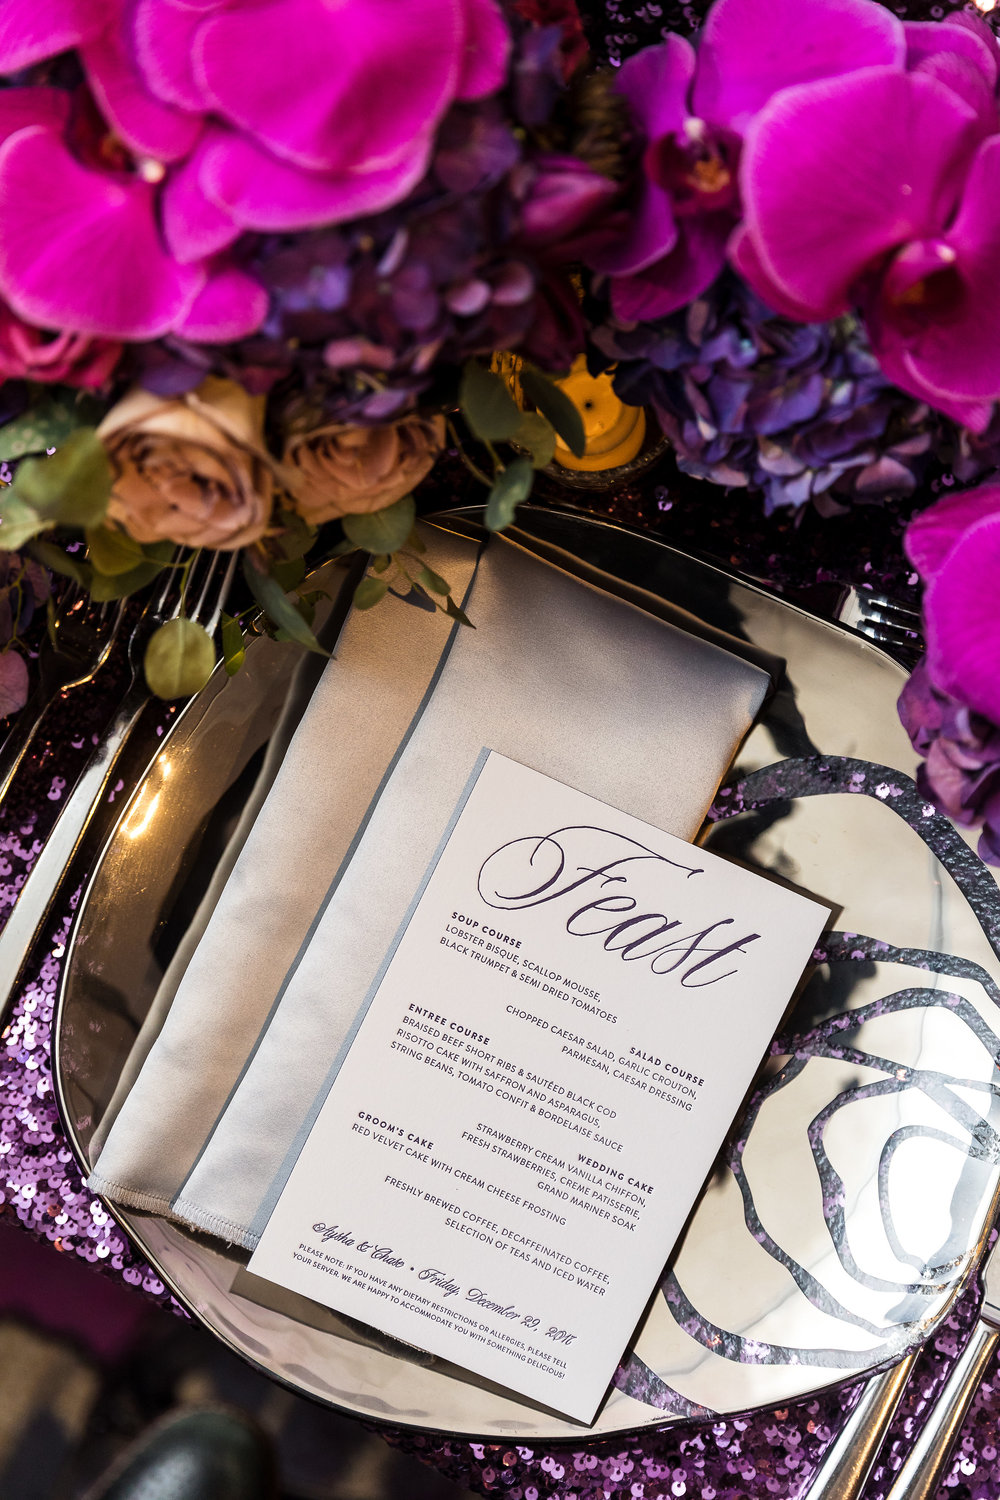 Luxe letterpress menus on purple sequence linens and folder napkin.  Wedding Planner:  Andrea Eppolito Events  |   Photography  Brian Leahy   |  Videography  HOO Films   |  Venue & Catering:  Mandarin Oriental  / Waldorf Astoria |  Floral & Decor:  Destinations by Design    |  Lighting:  LED Unplugged  |  Music:  DJ Breeze II   |  Hair & Make Up:  Amelia C & Co   |  Invitations by  Bliss & Bone   |  Menu and Escort Cards by  Meldeen